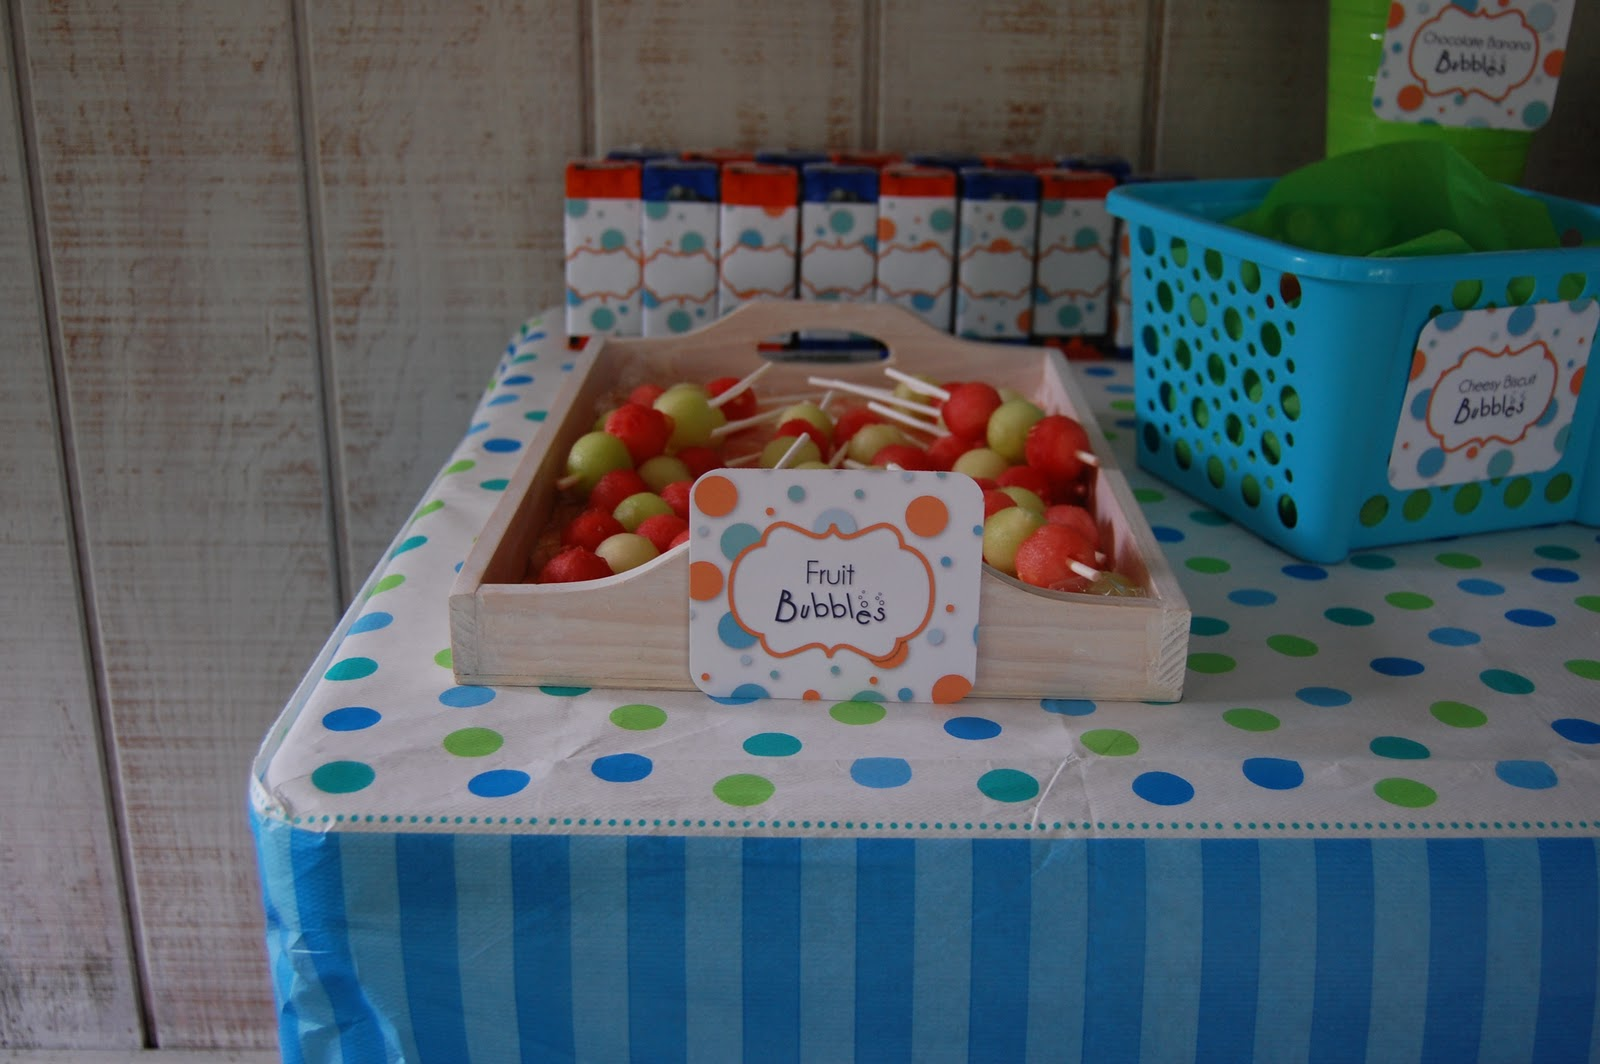 Beth kruse custom creations diy bubble guppies - Bubble guppie birthday ideas ...